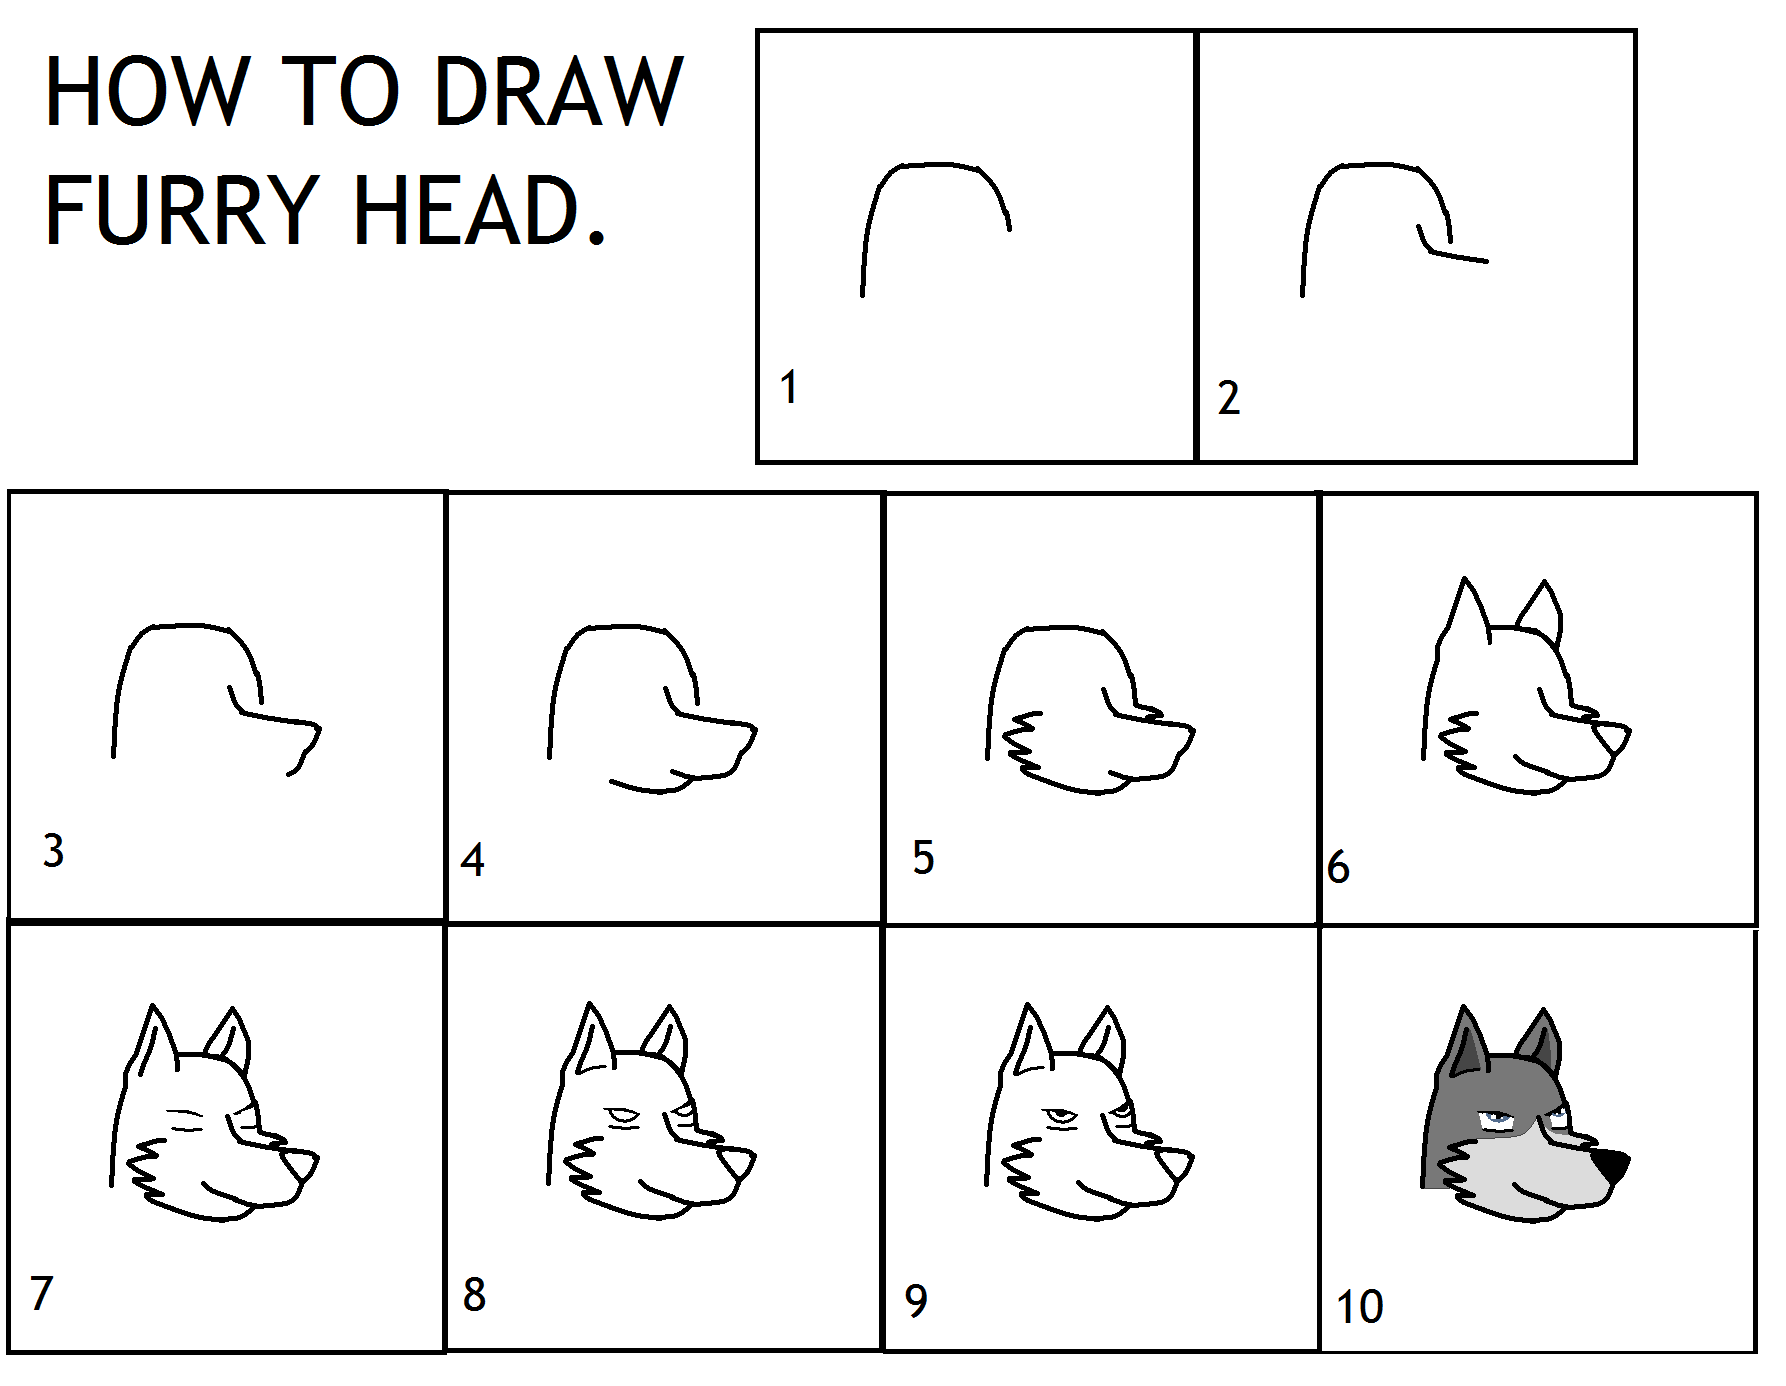 How To Draw A Furry Wolf Head